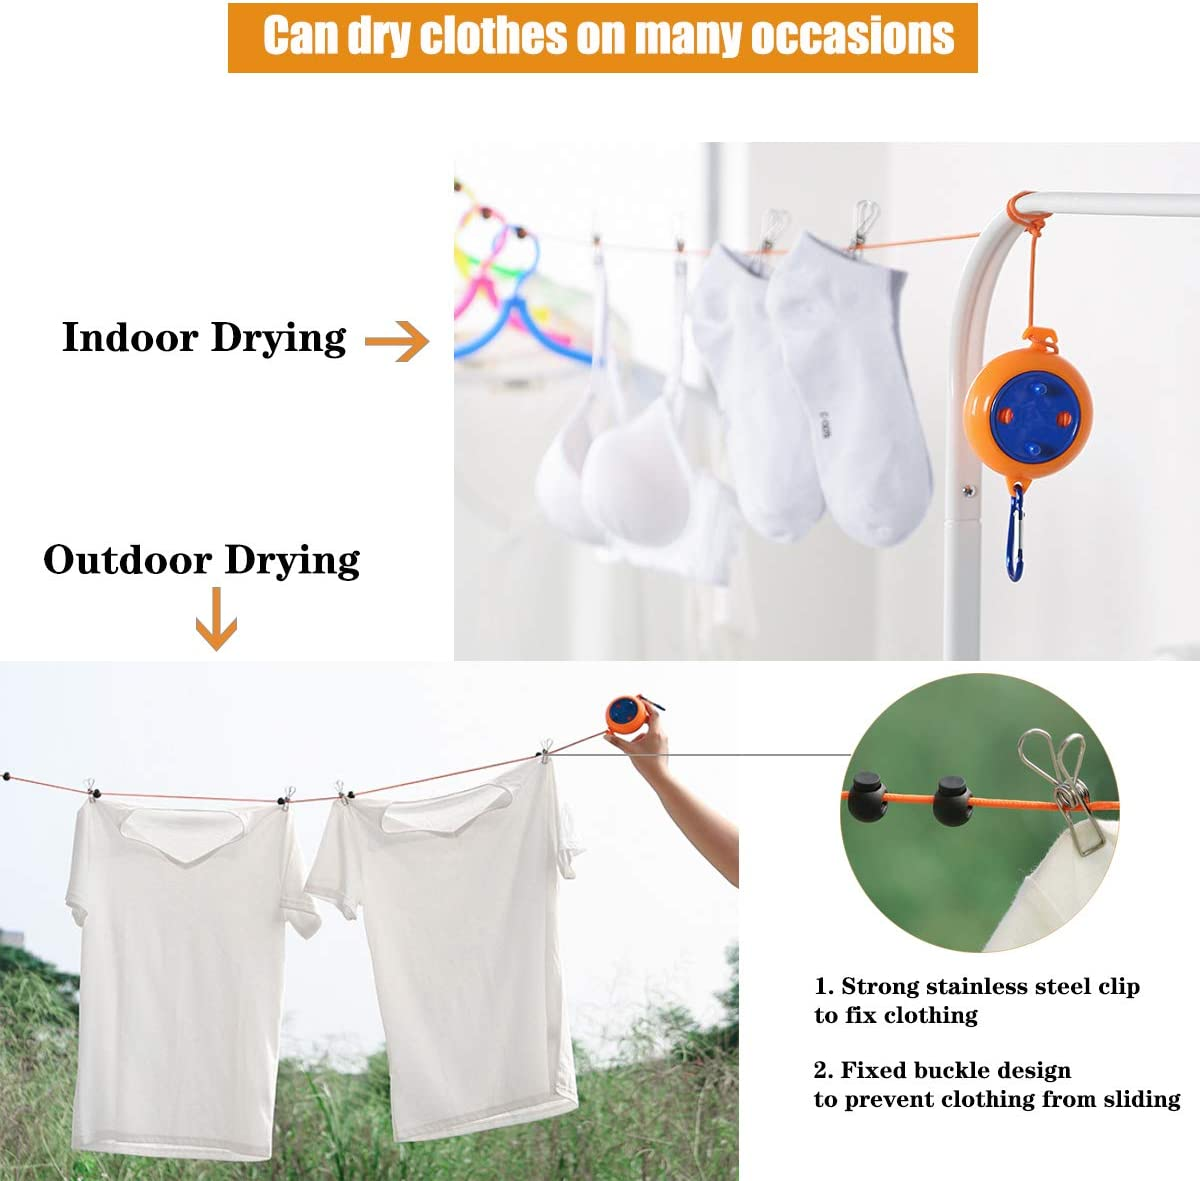 Retractable Washing Line 8 Meters Laundry Clothes Lines Outdoor Camping Adjustable Travel Portable Washing Line With Fixed Buckle And 20 Clothespins